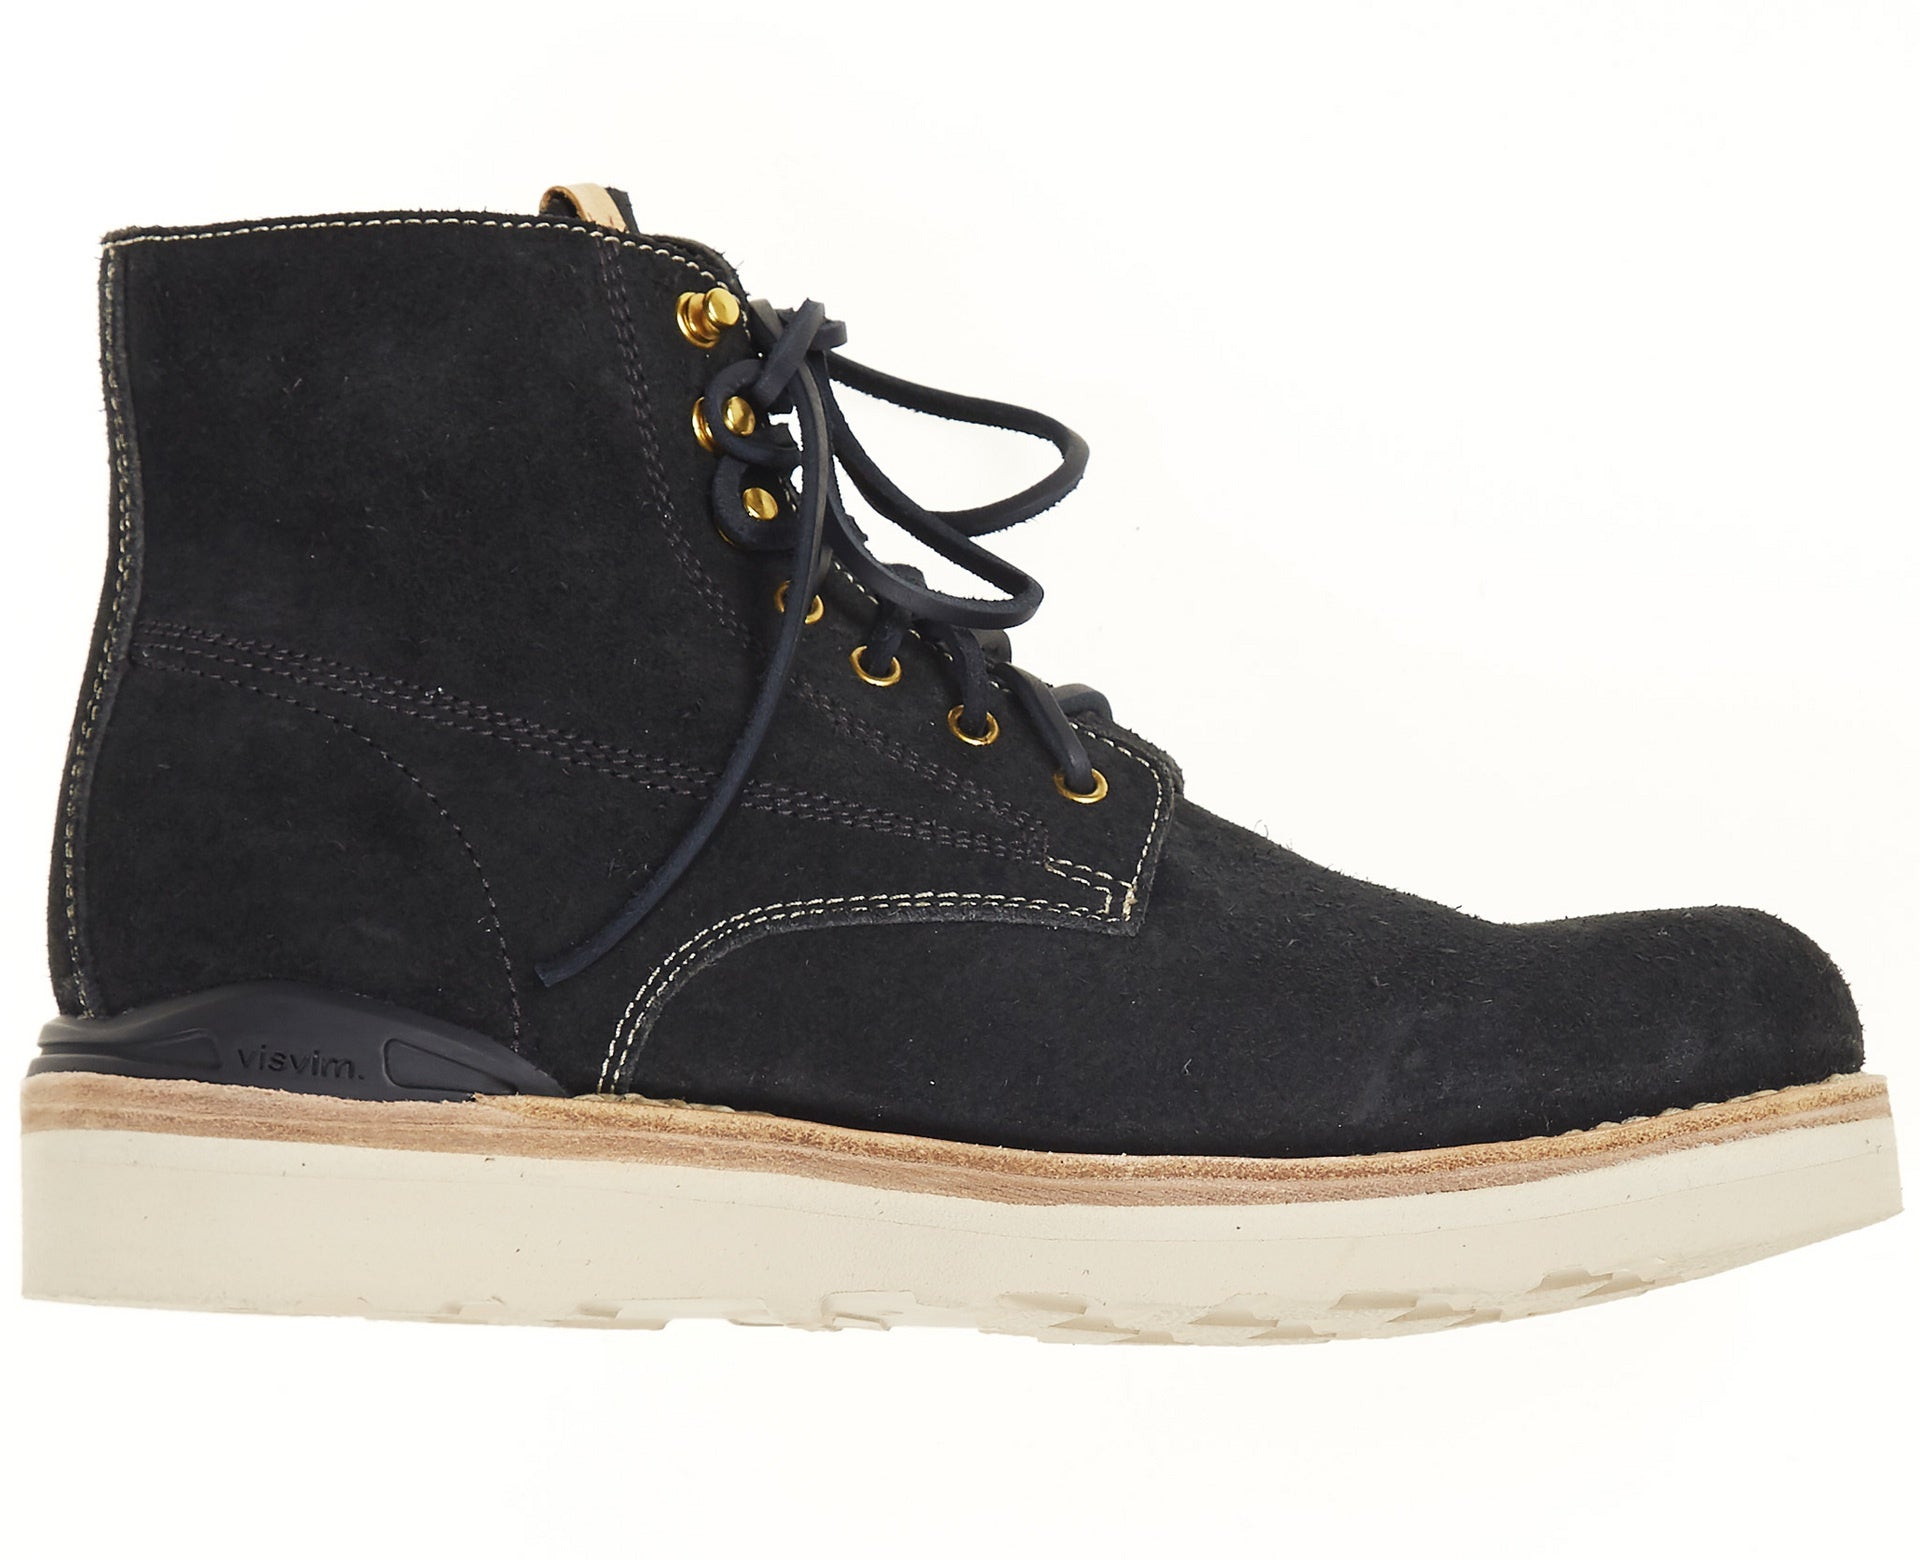 Visvim Men's Virgil Boots Folk Suede Black